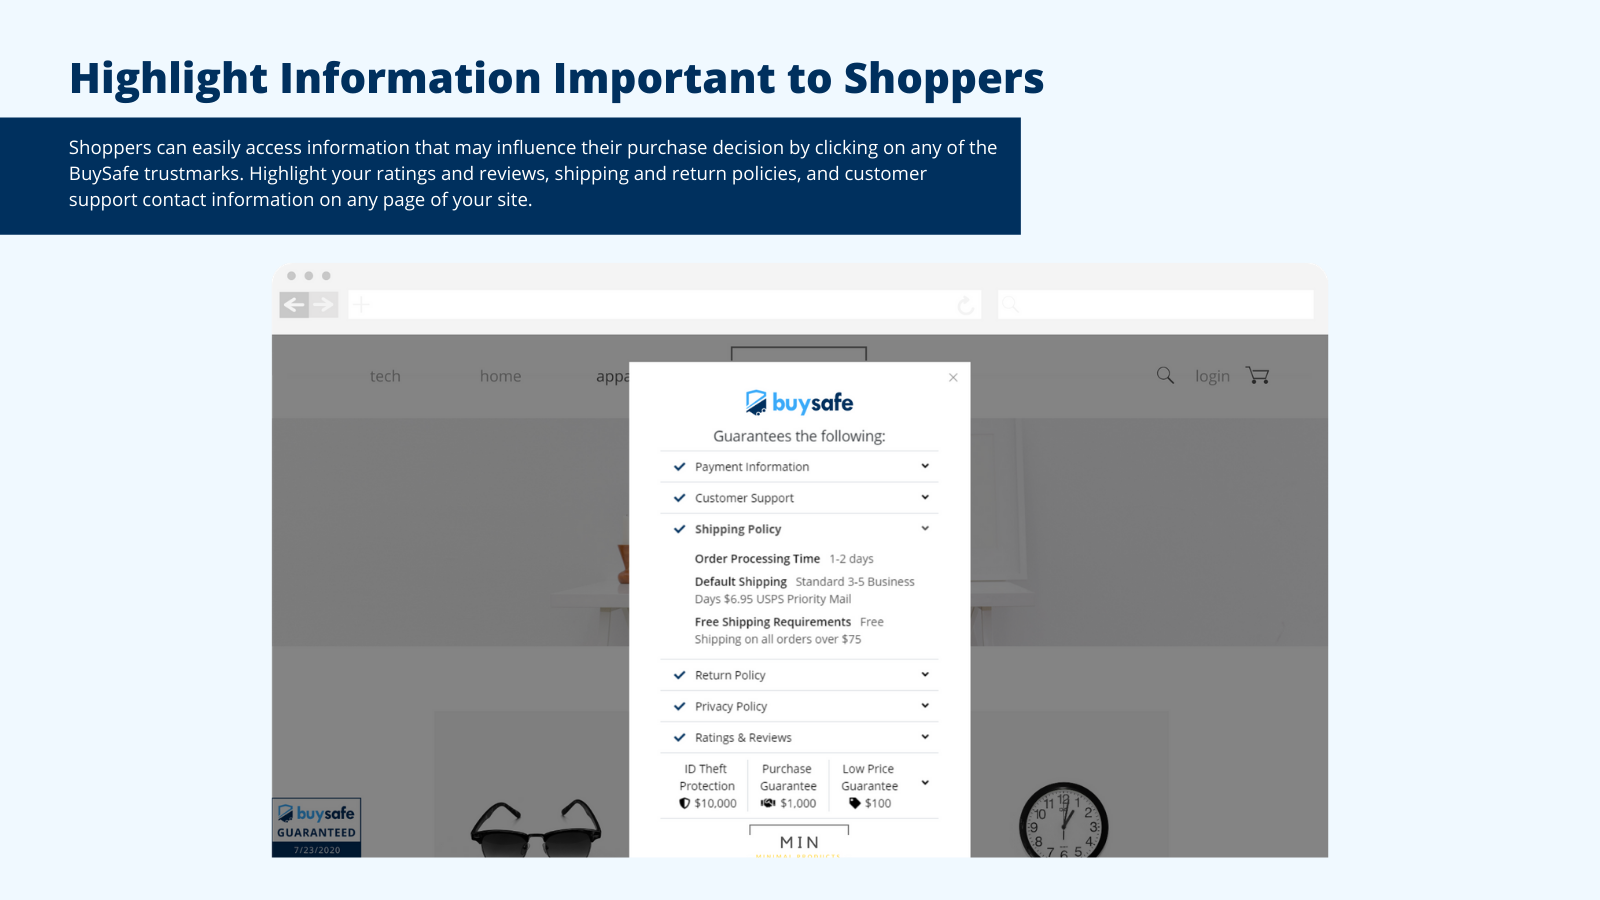 Highlight information important to shoppers